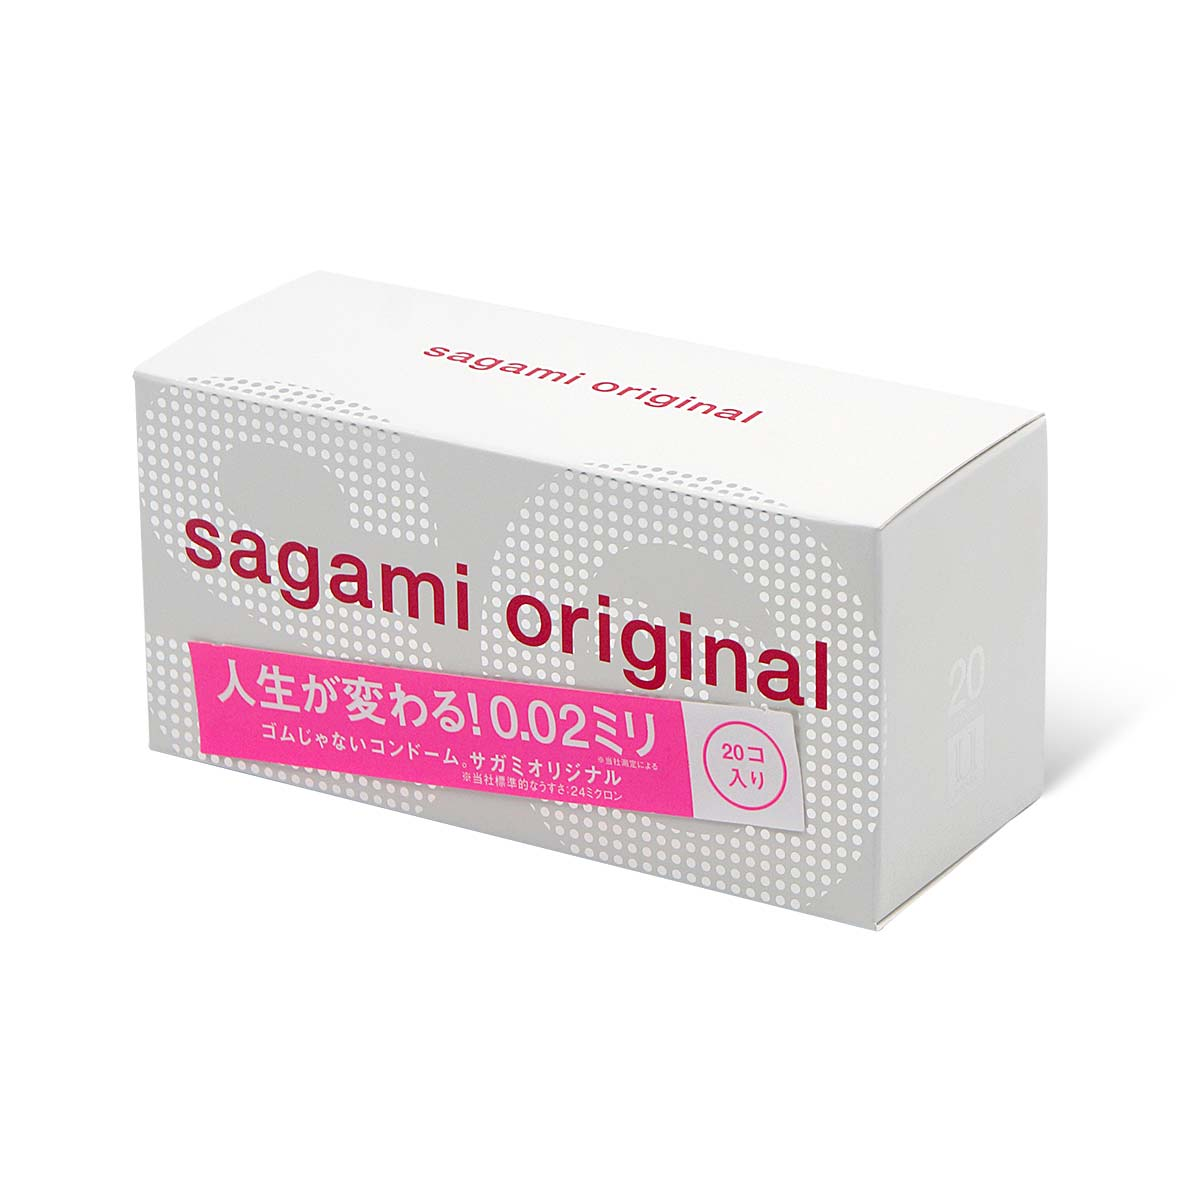 Sagami Original 0.02 (2nd generation) 20's Pack PU Condom